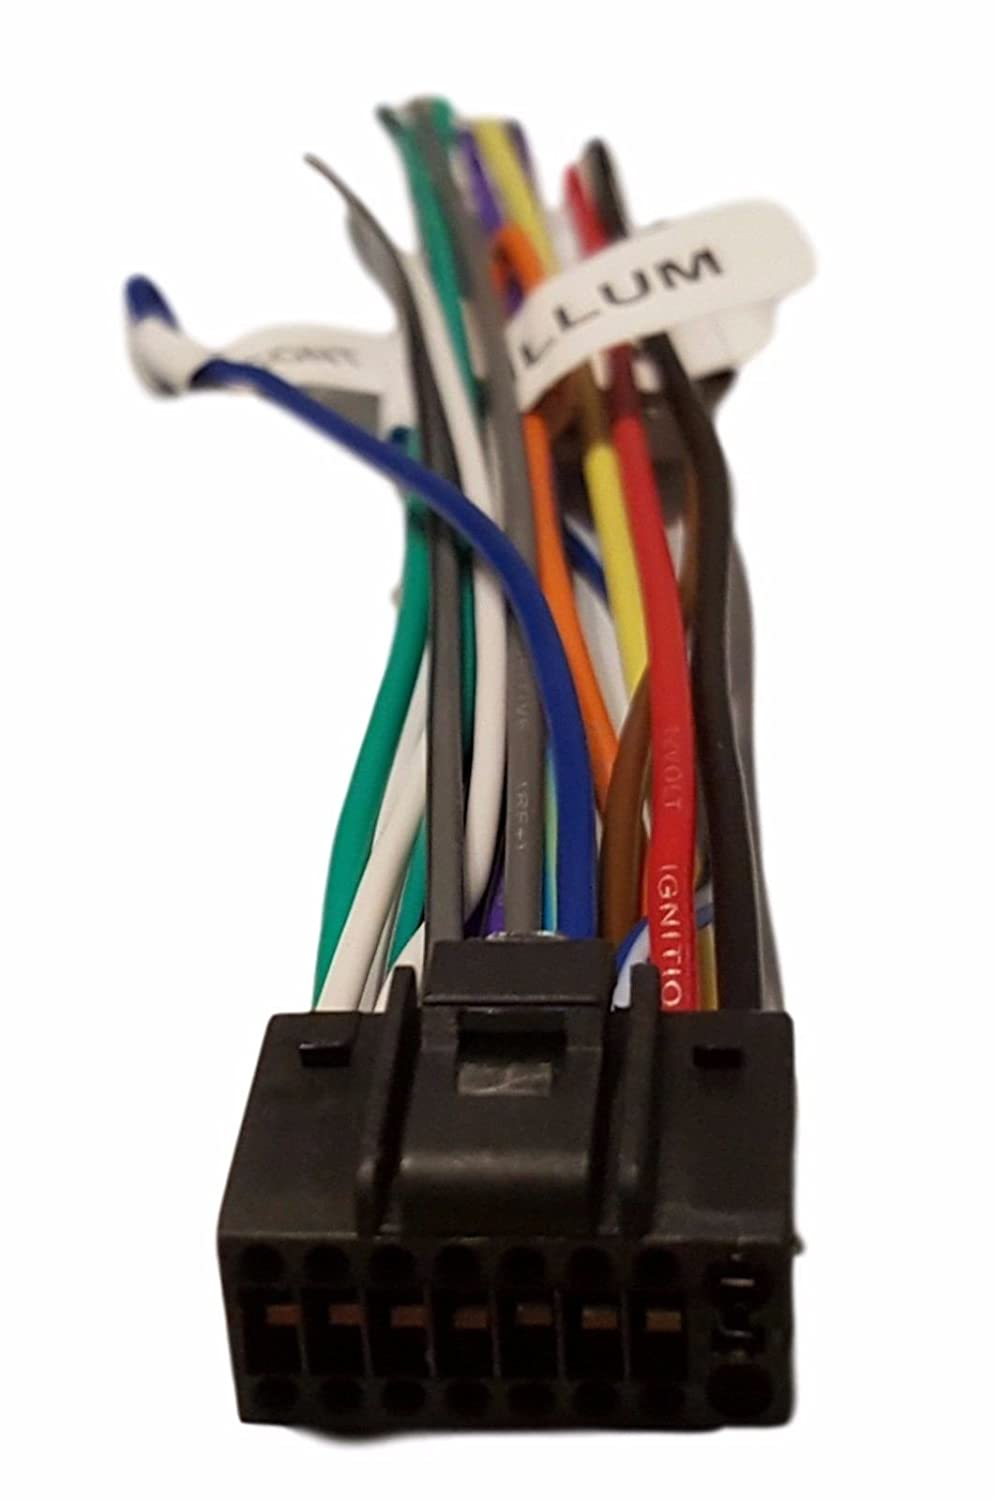 Wiring Harness For Kenwood Dnx891hd | Wiring Liry on